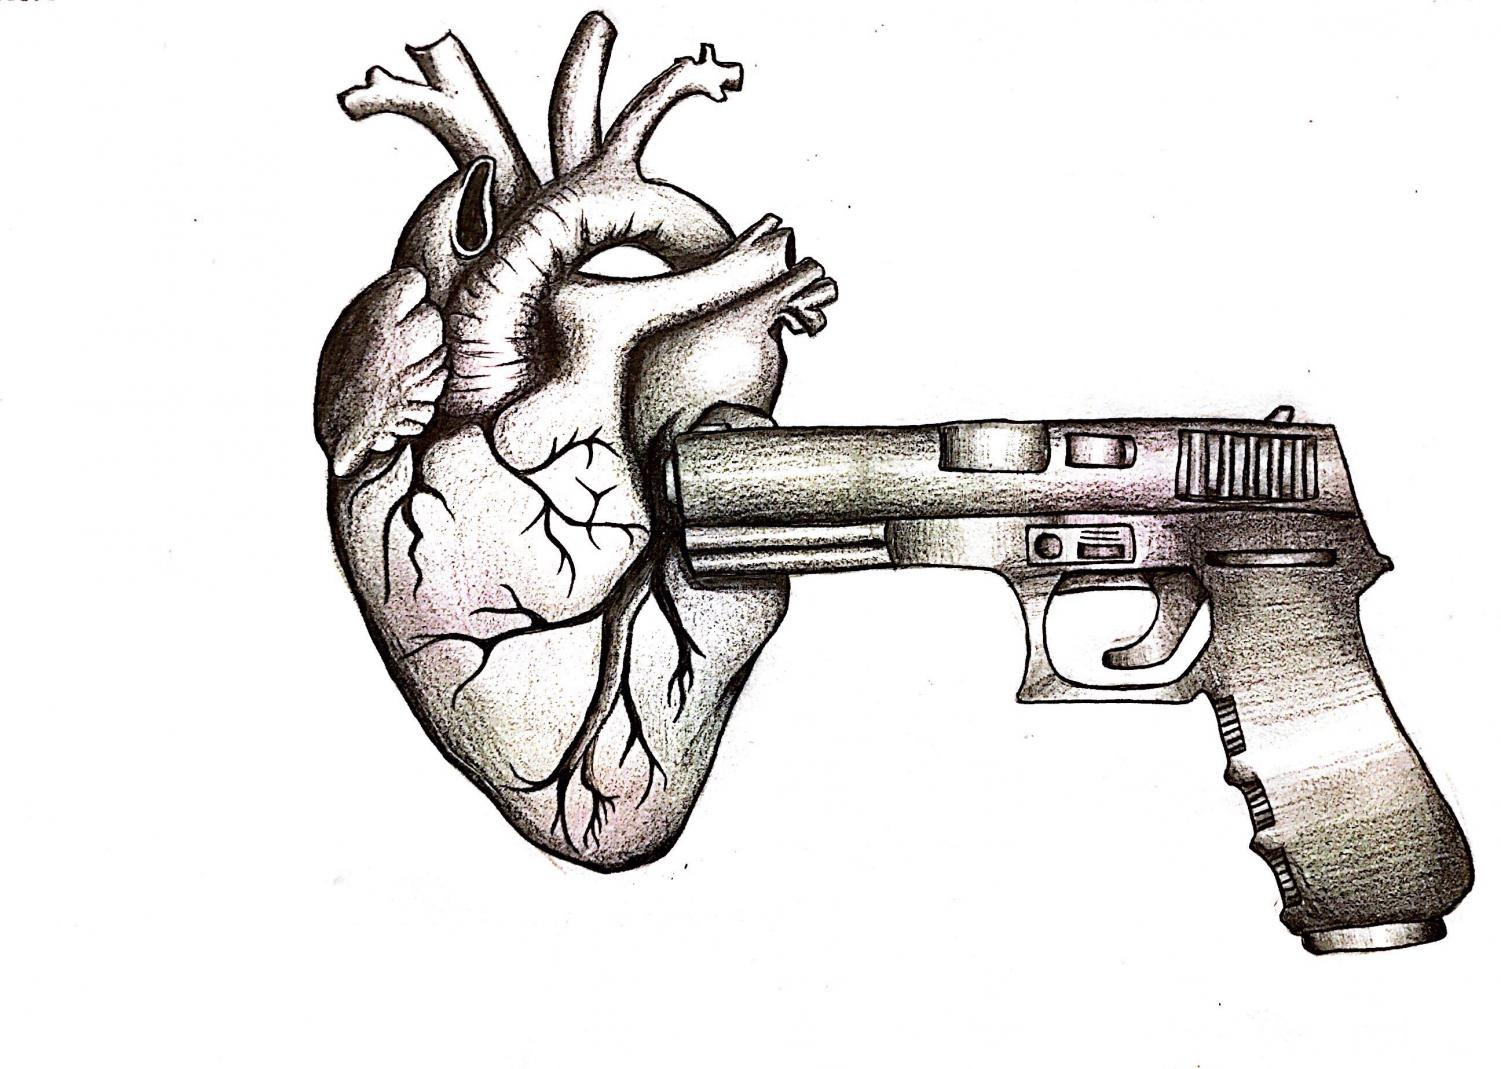 The picture shown depicts a gun being crammed into a beating heart